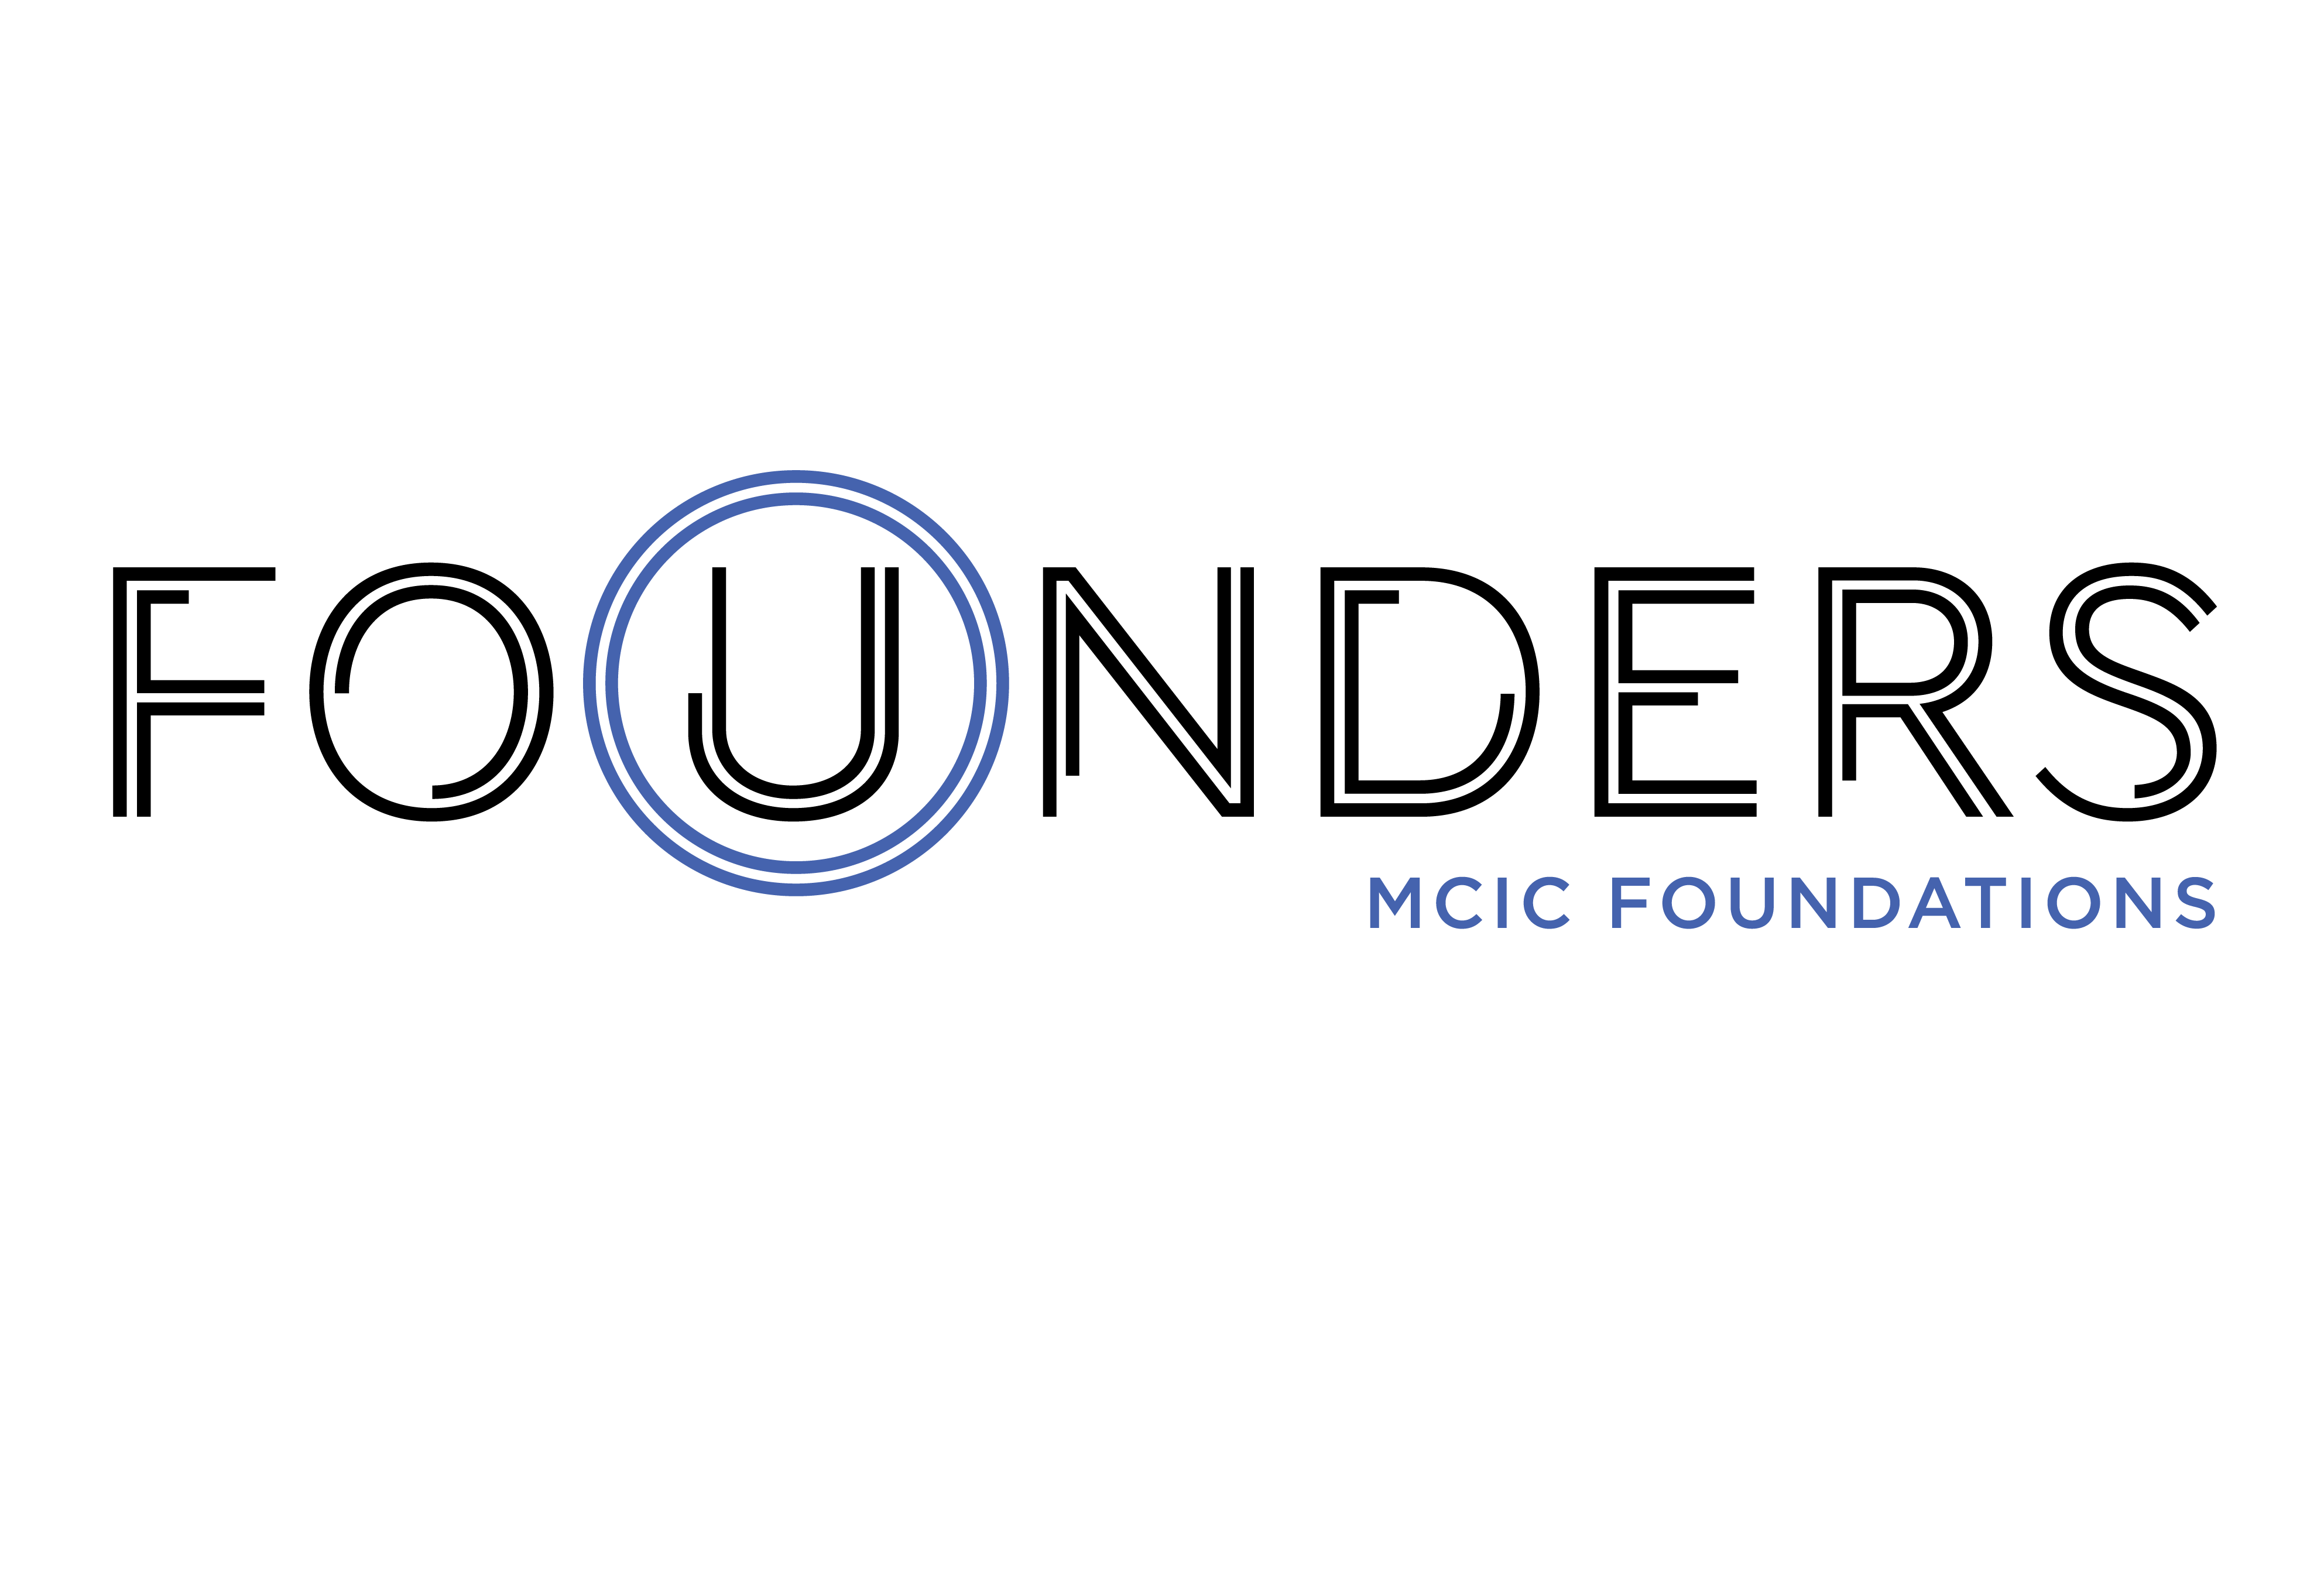 FOUNDERS_MCIC_Foundations